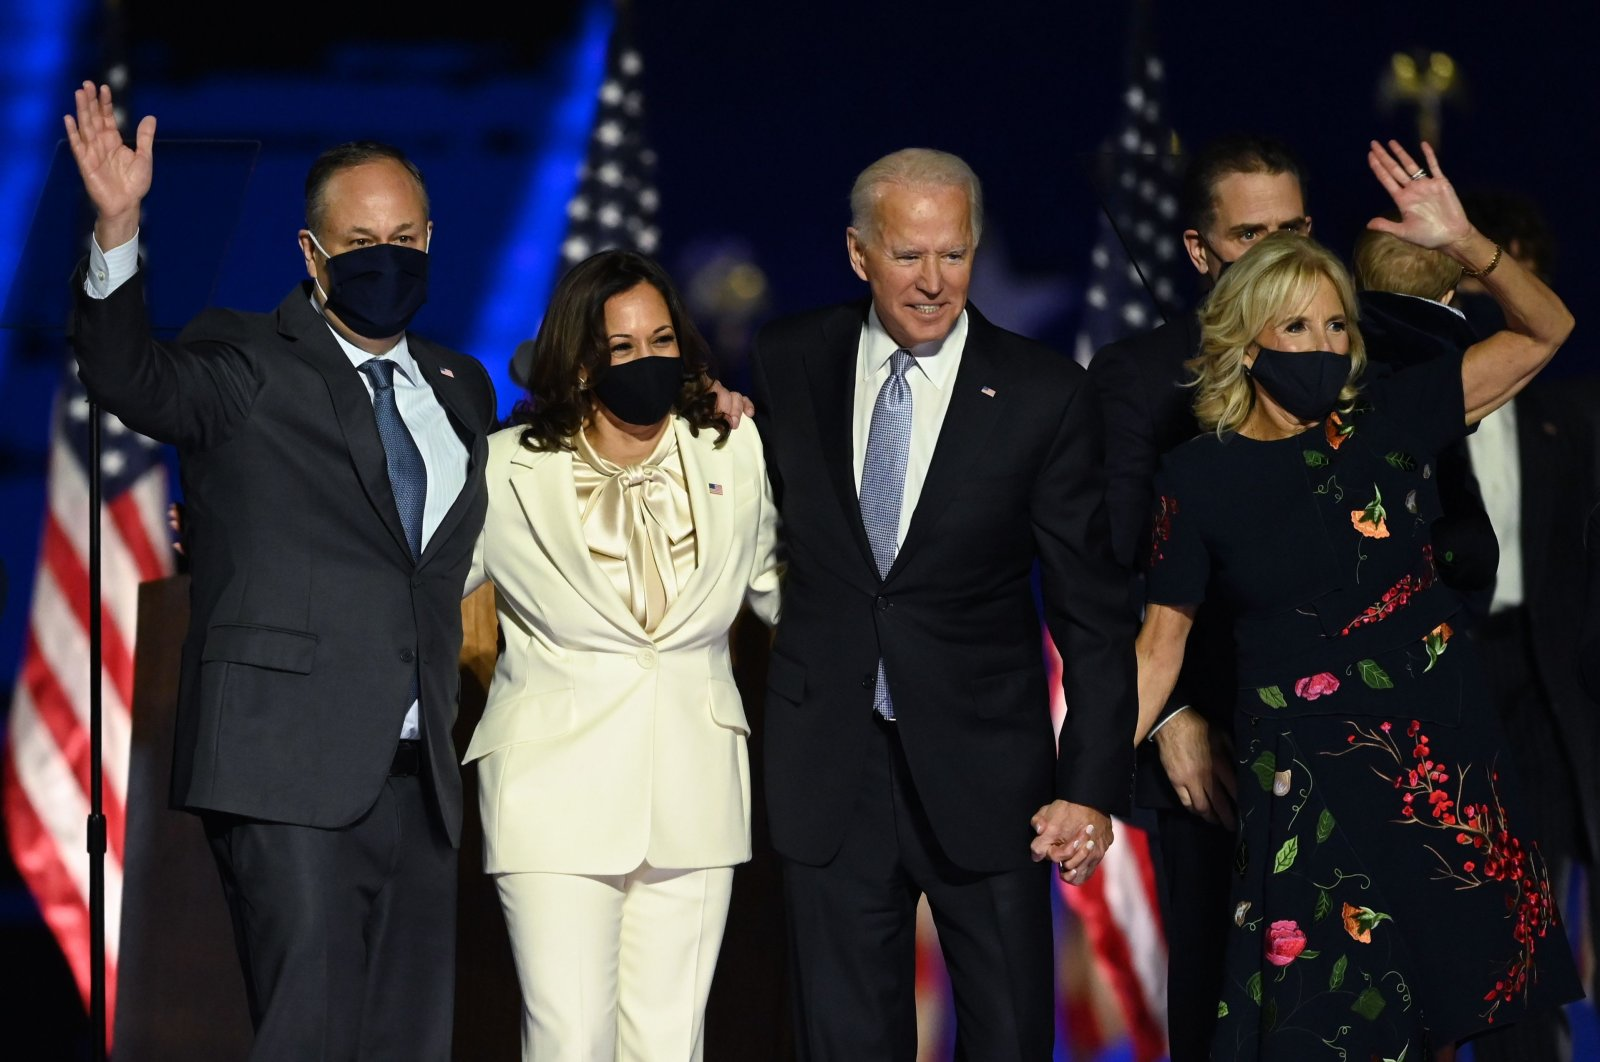 U.S. President-elect Joe Biden (2nd R) and Vice President-elect Kamala Harris (2nd L) stand with spouses Jill Biden (R) and Doug Emhoff (L) after delivering their first speech after the presidential victory, in Wilmington, Delaware, Nov. 7, 2020. (AFP Photo)